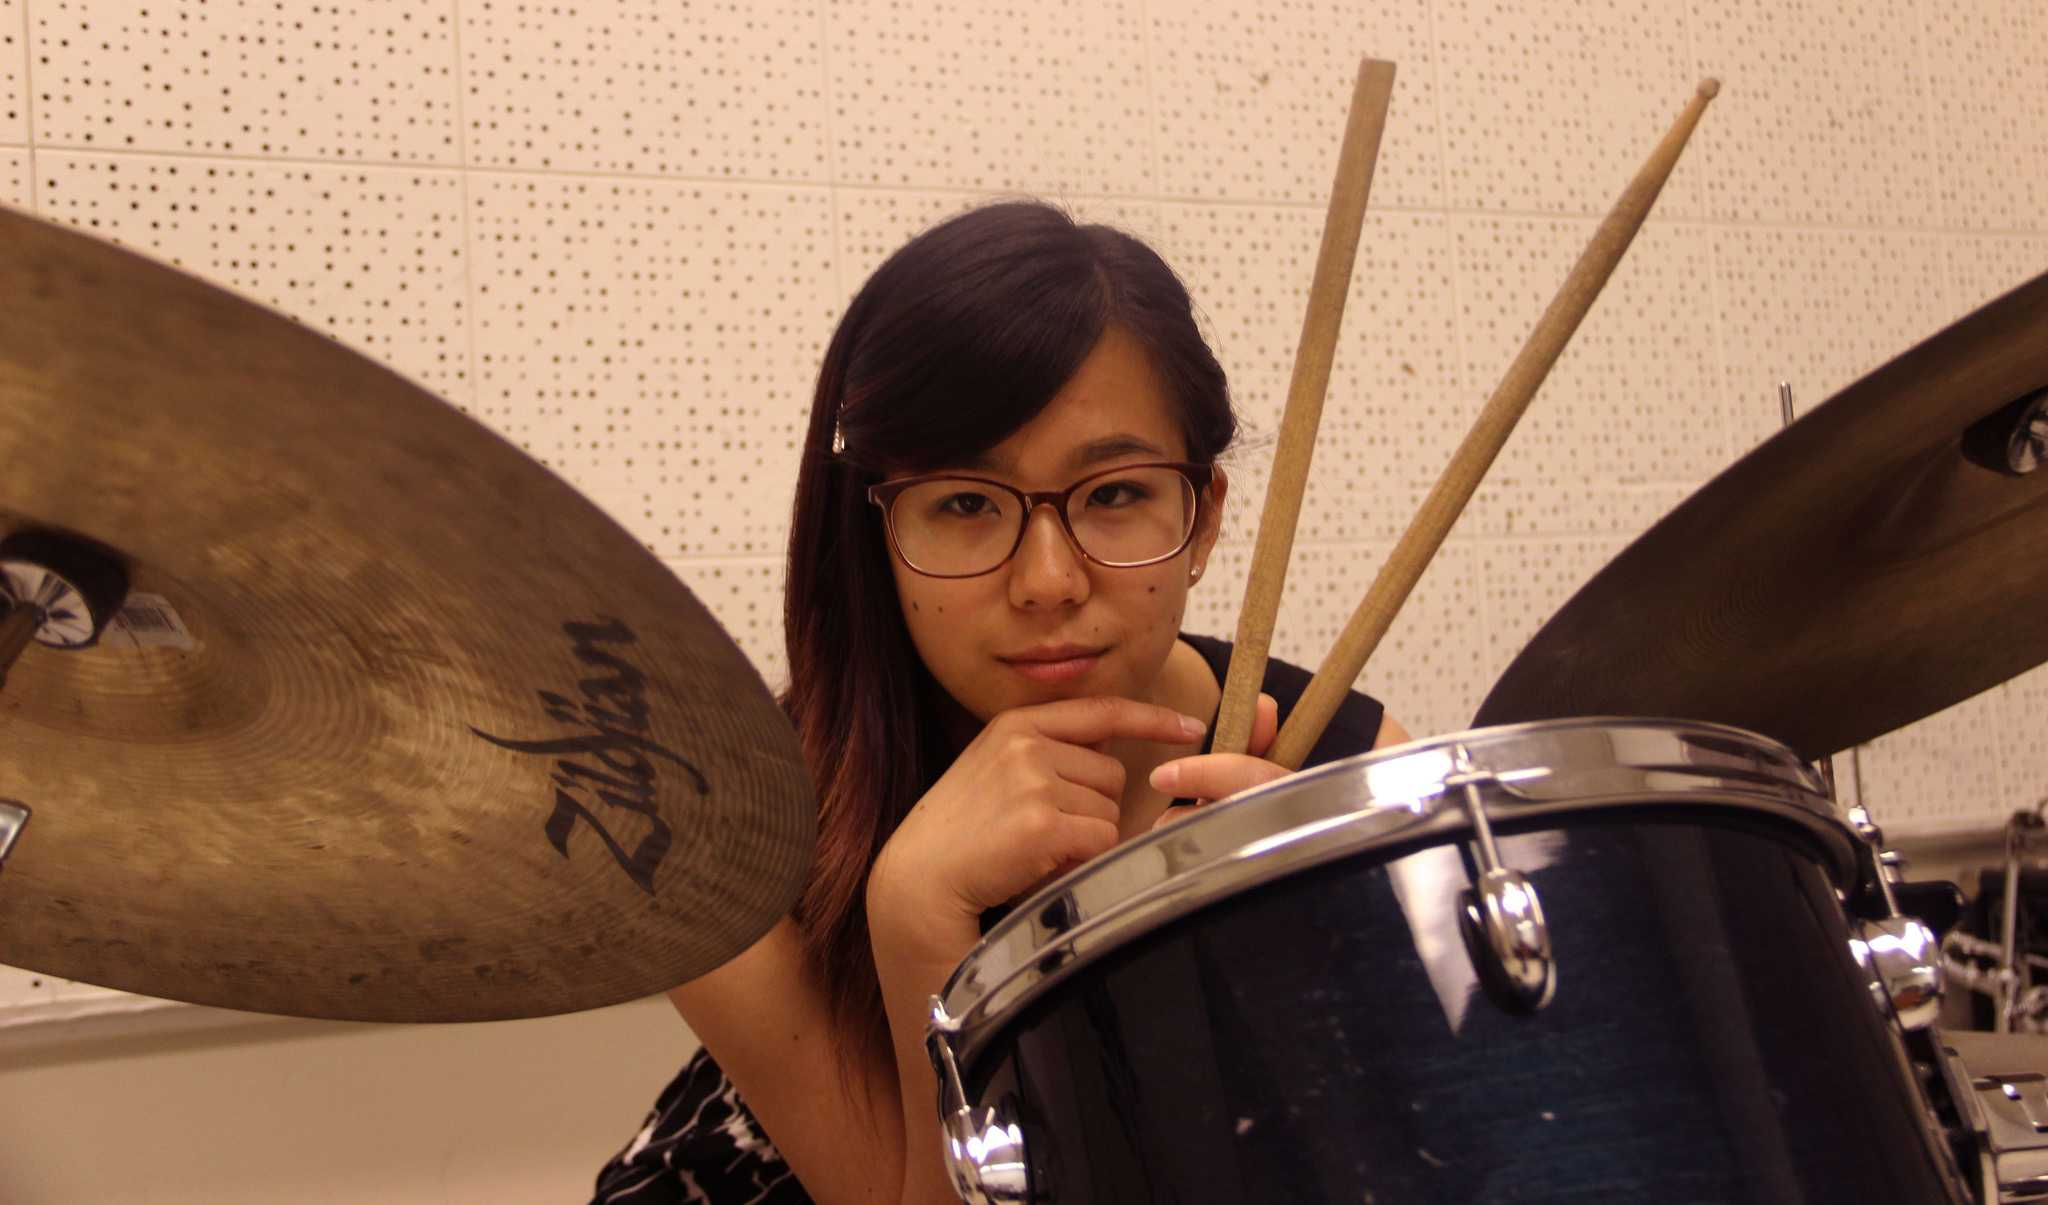 Jazz drummer Lilian Wu sits with her drums in the Creative Art building for a portrait Thursday, April 16. (Angelica Williams / Xpress)